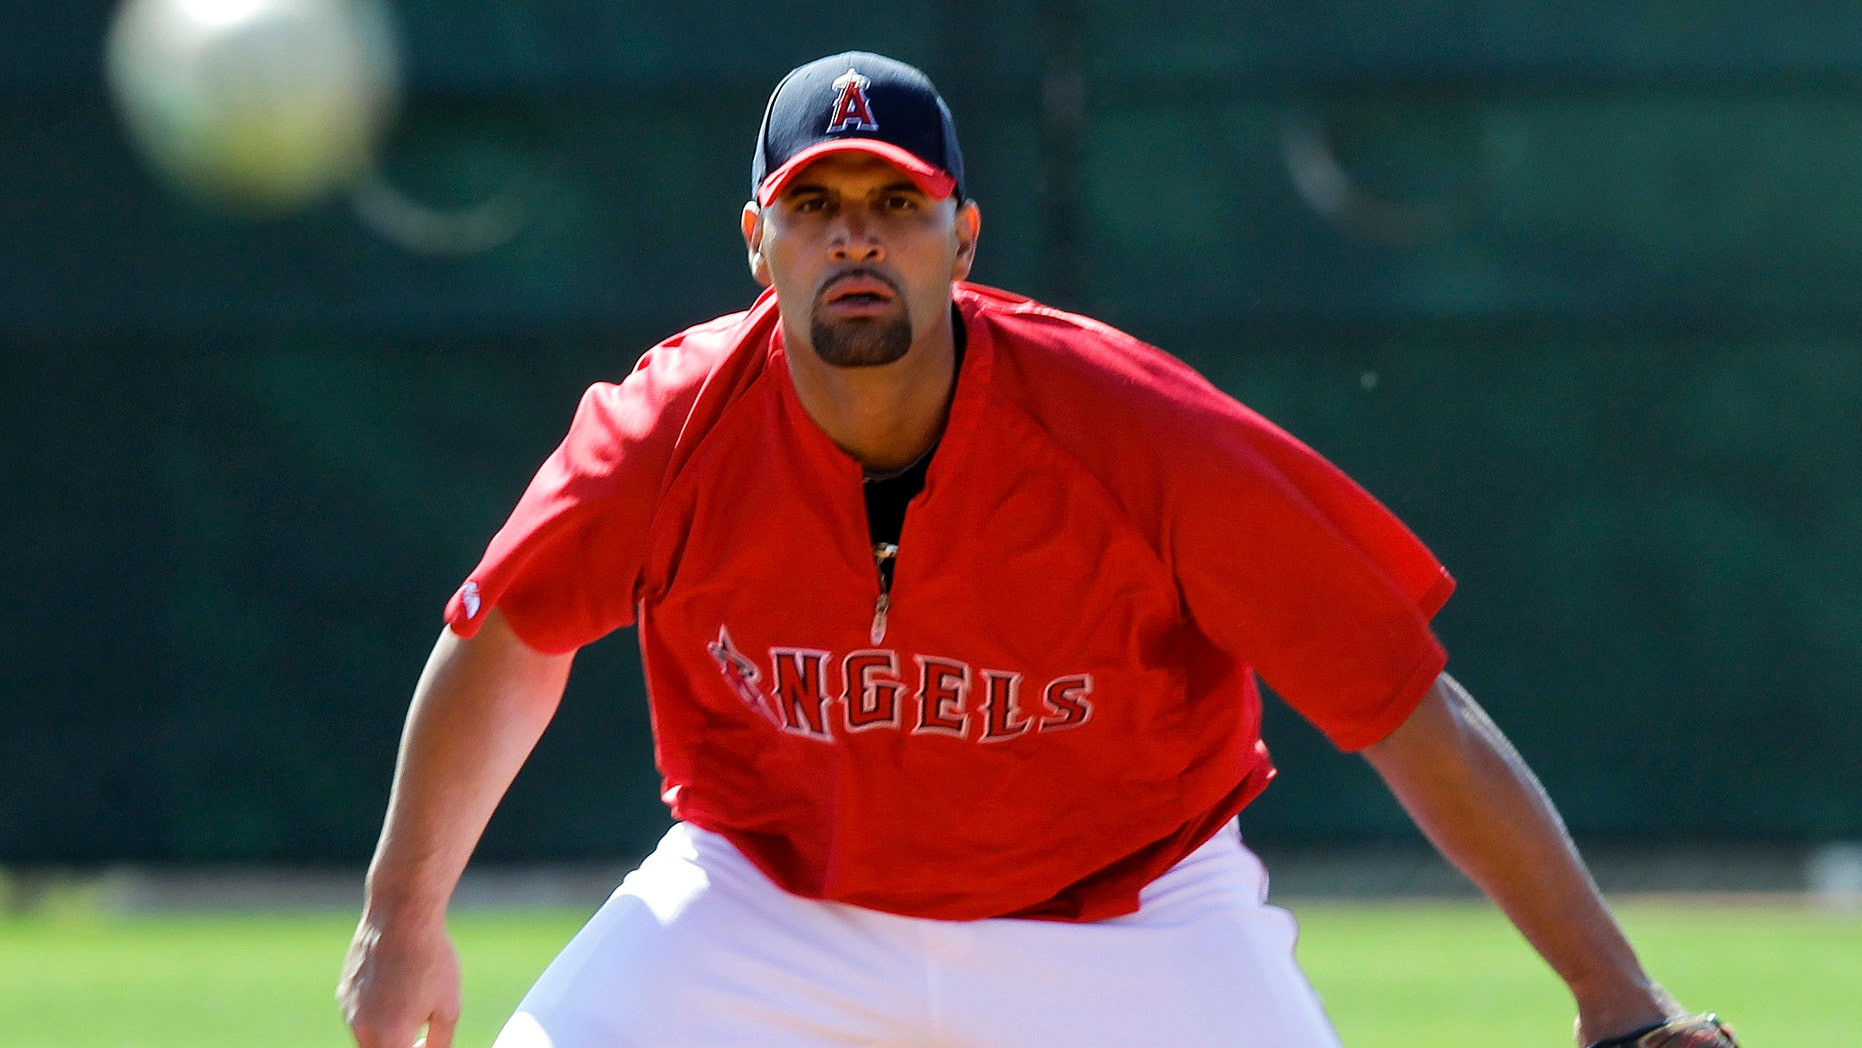 Albert Pujols fields a ground ball during a baseball spring training workout Friday, March 2, 2012, in Tempe, Ariz. (AP Photo/Morry Gash)